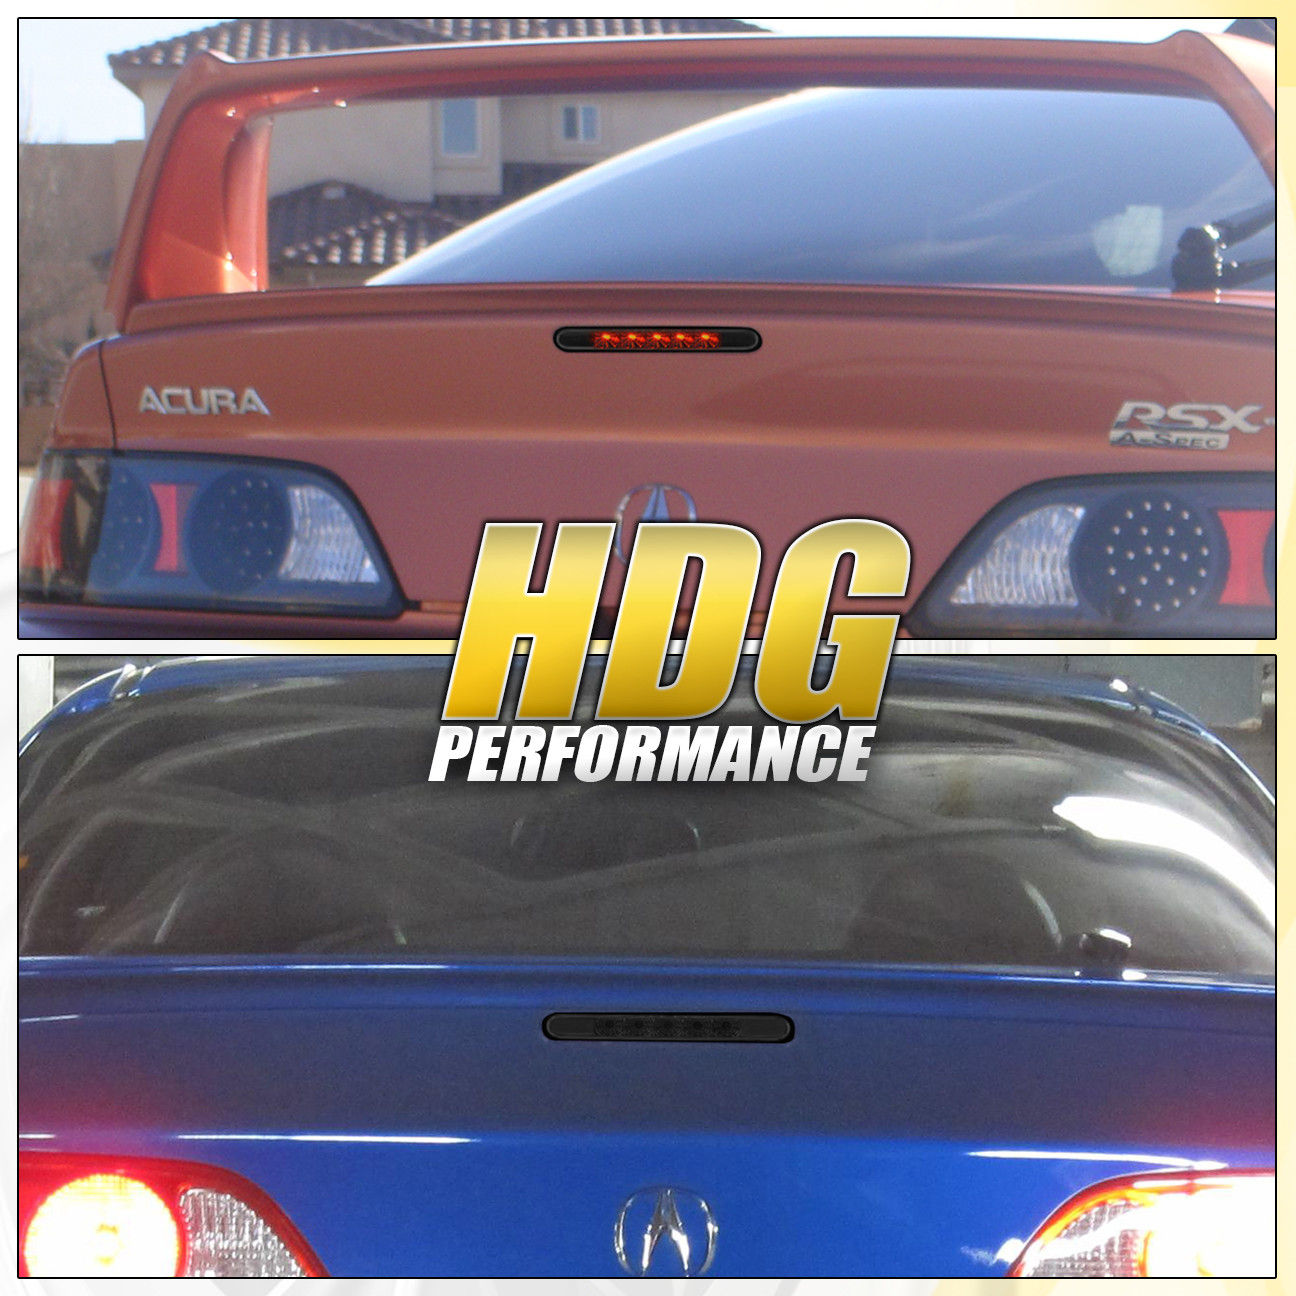 2006 Acura Tl Tail Lights For Sale: FITS ACURA RSX DC5 02-06 JDM REAR TRUNK BRAKE 3RD THIRD L